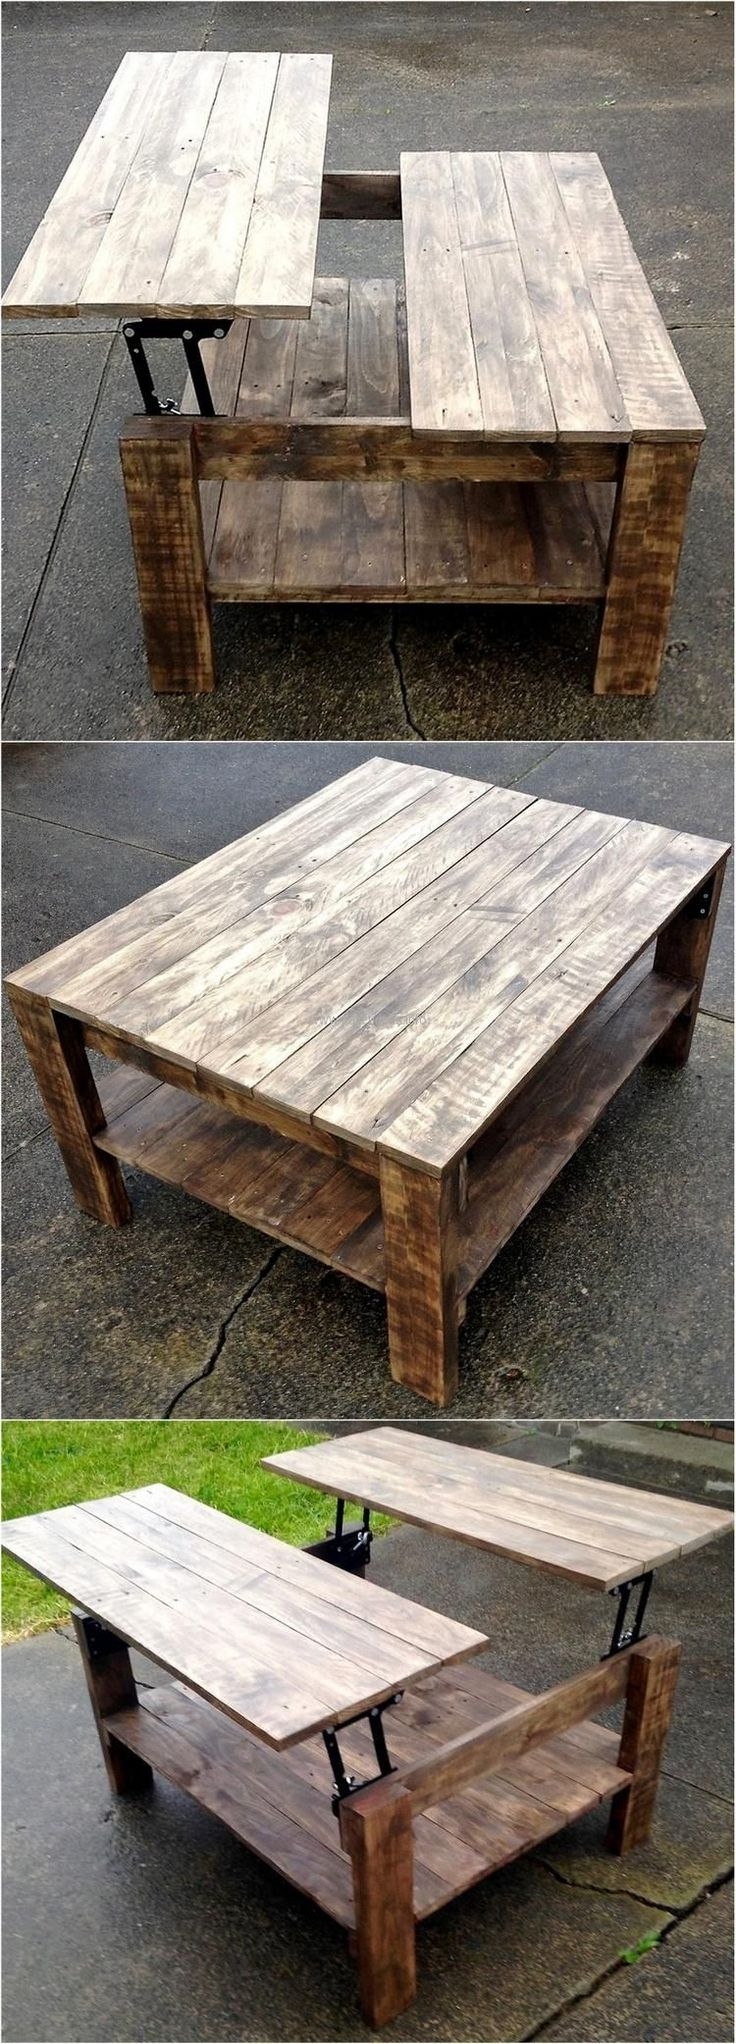 best woodworking plans images on pinterest furniture plans